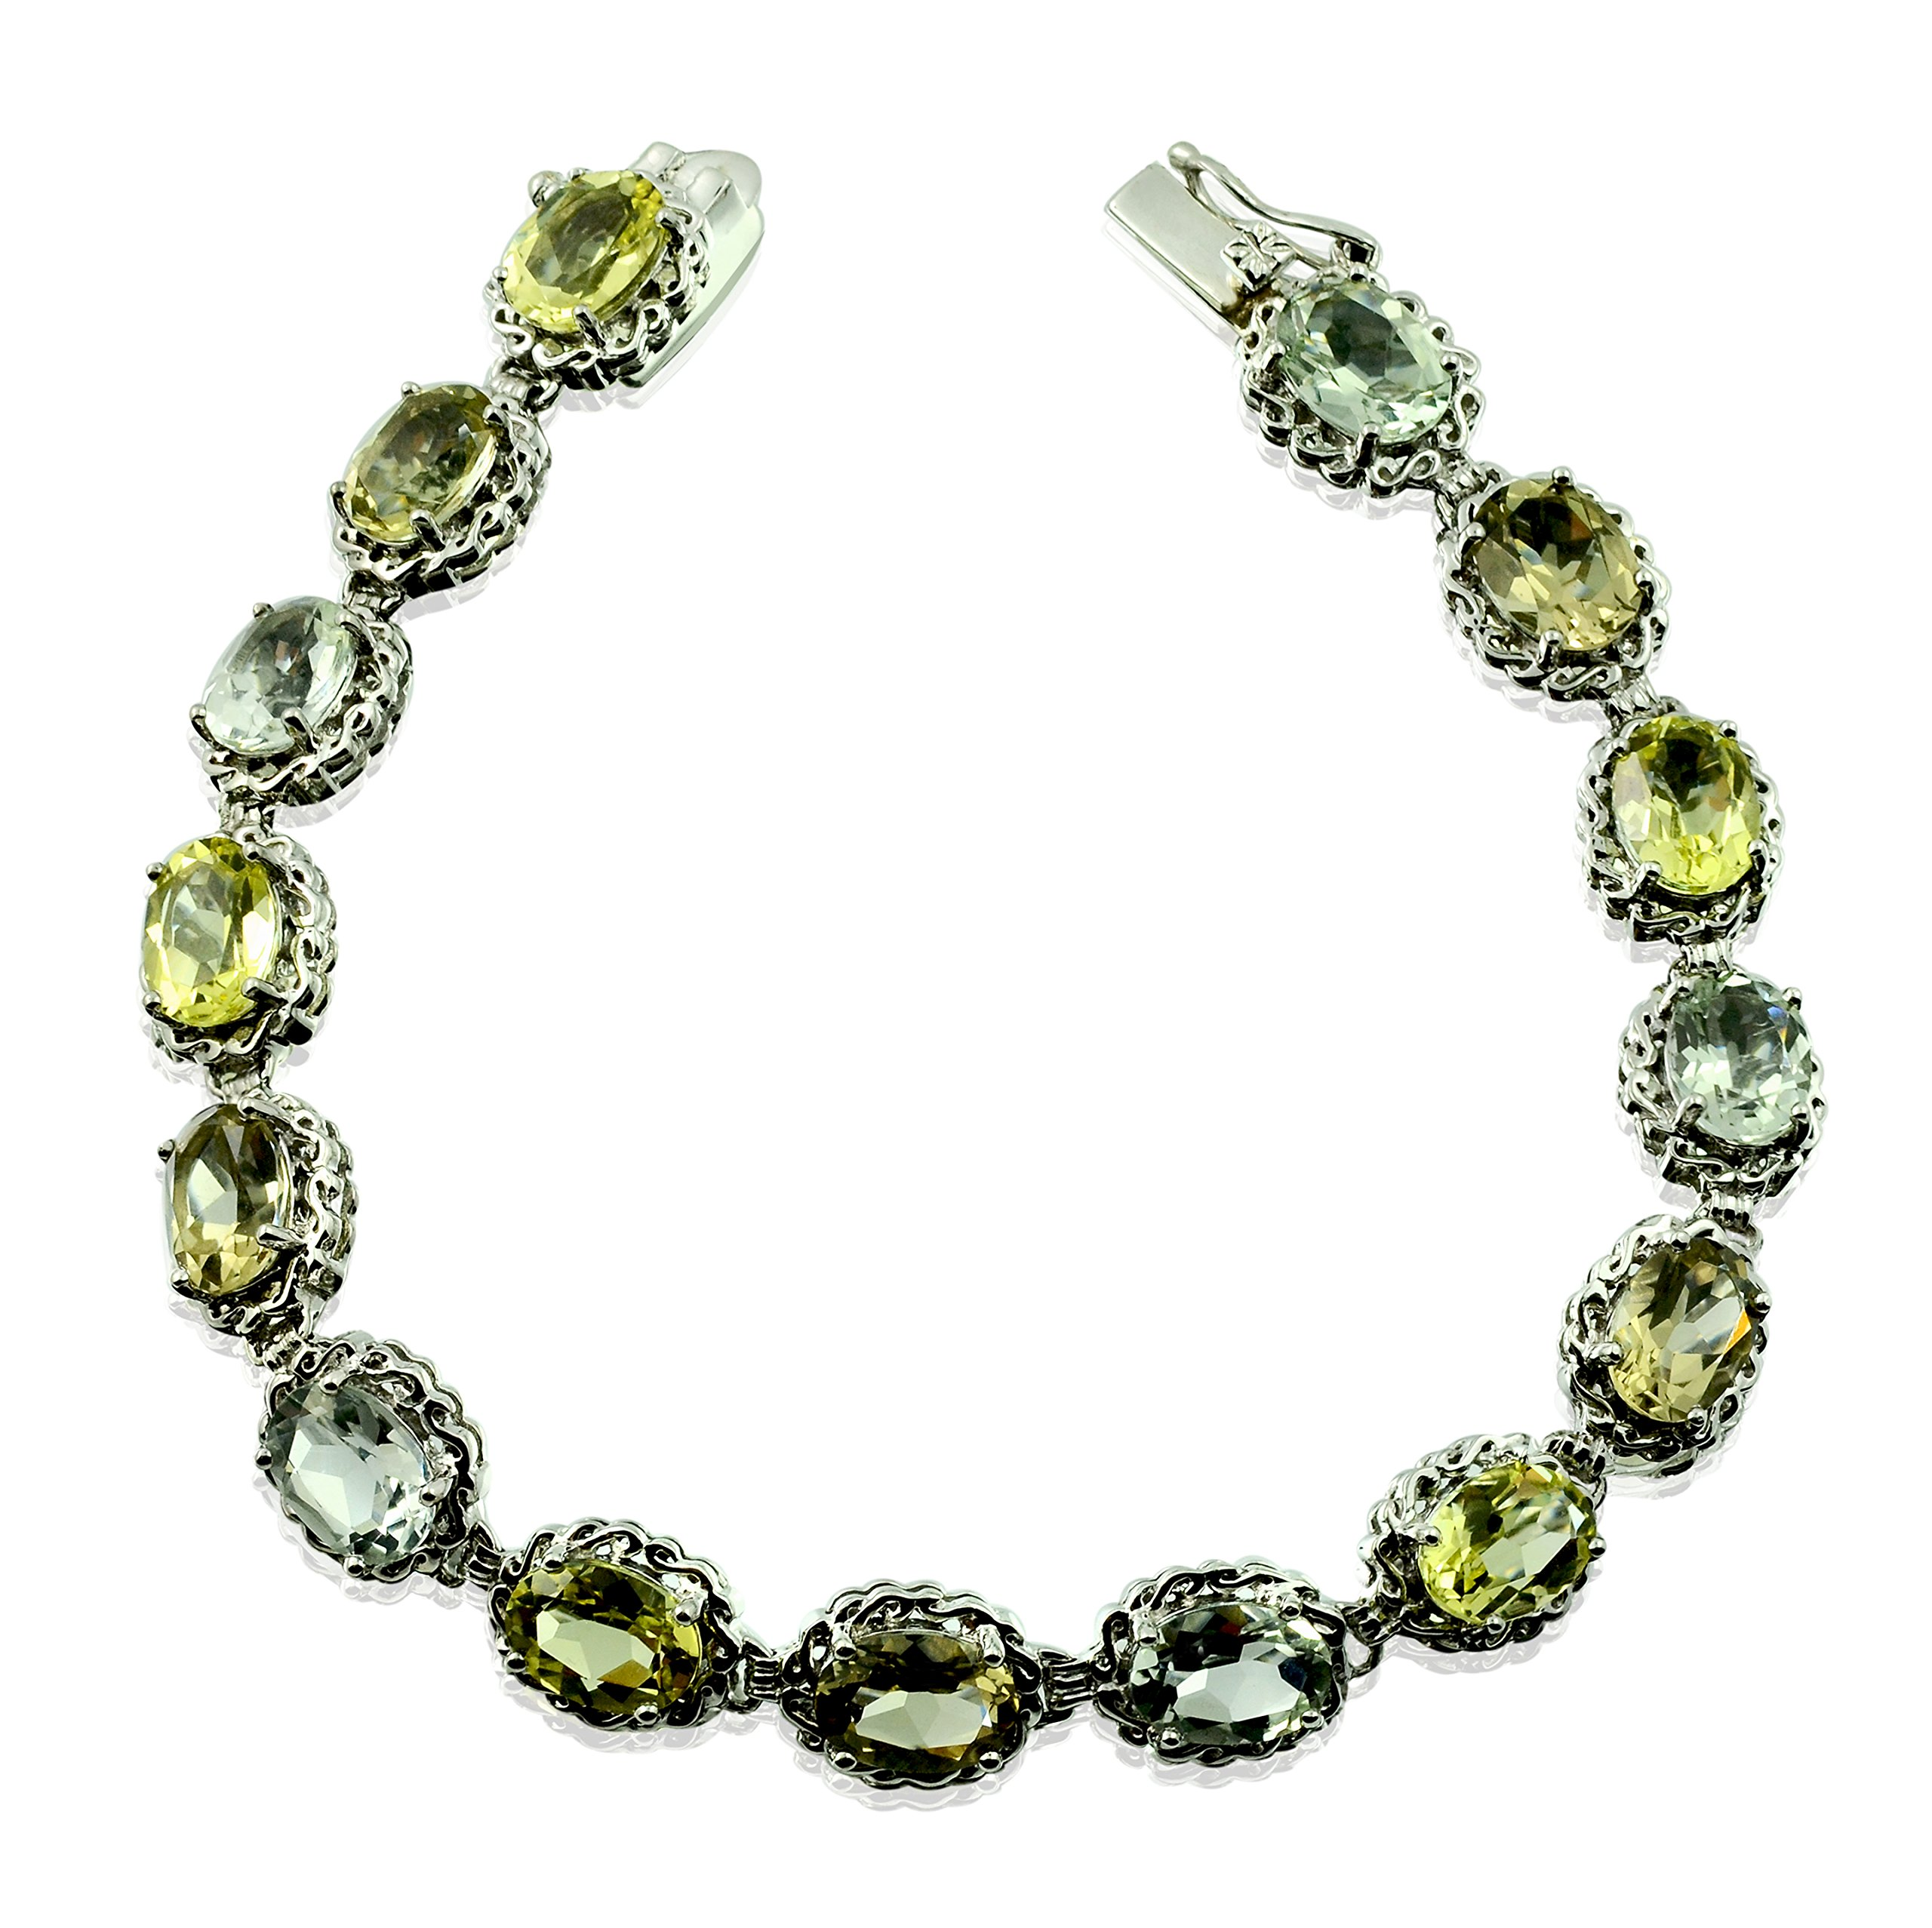 "Sterling Silver 925 TENNIS Bracelet GENUINE GREEN AMETHYST 17 Cts with RHODIUM-PLATED Finish, 7"" Long"